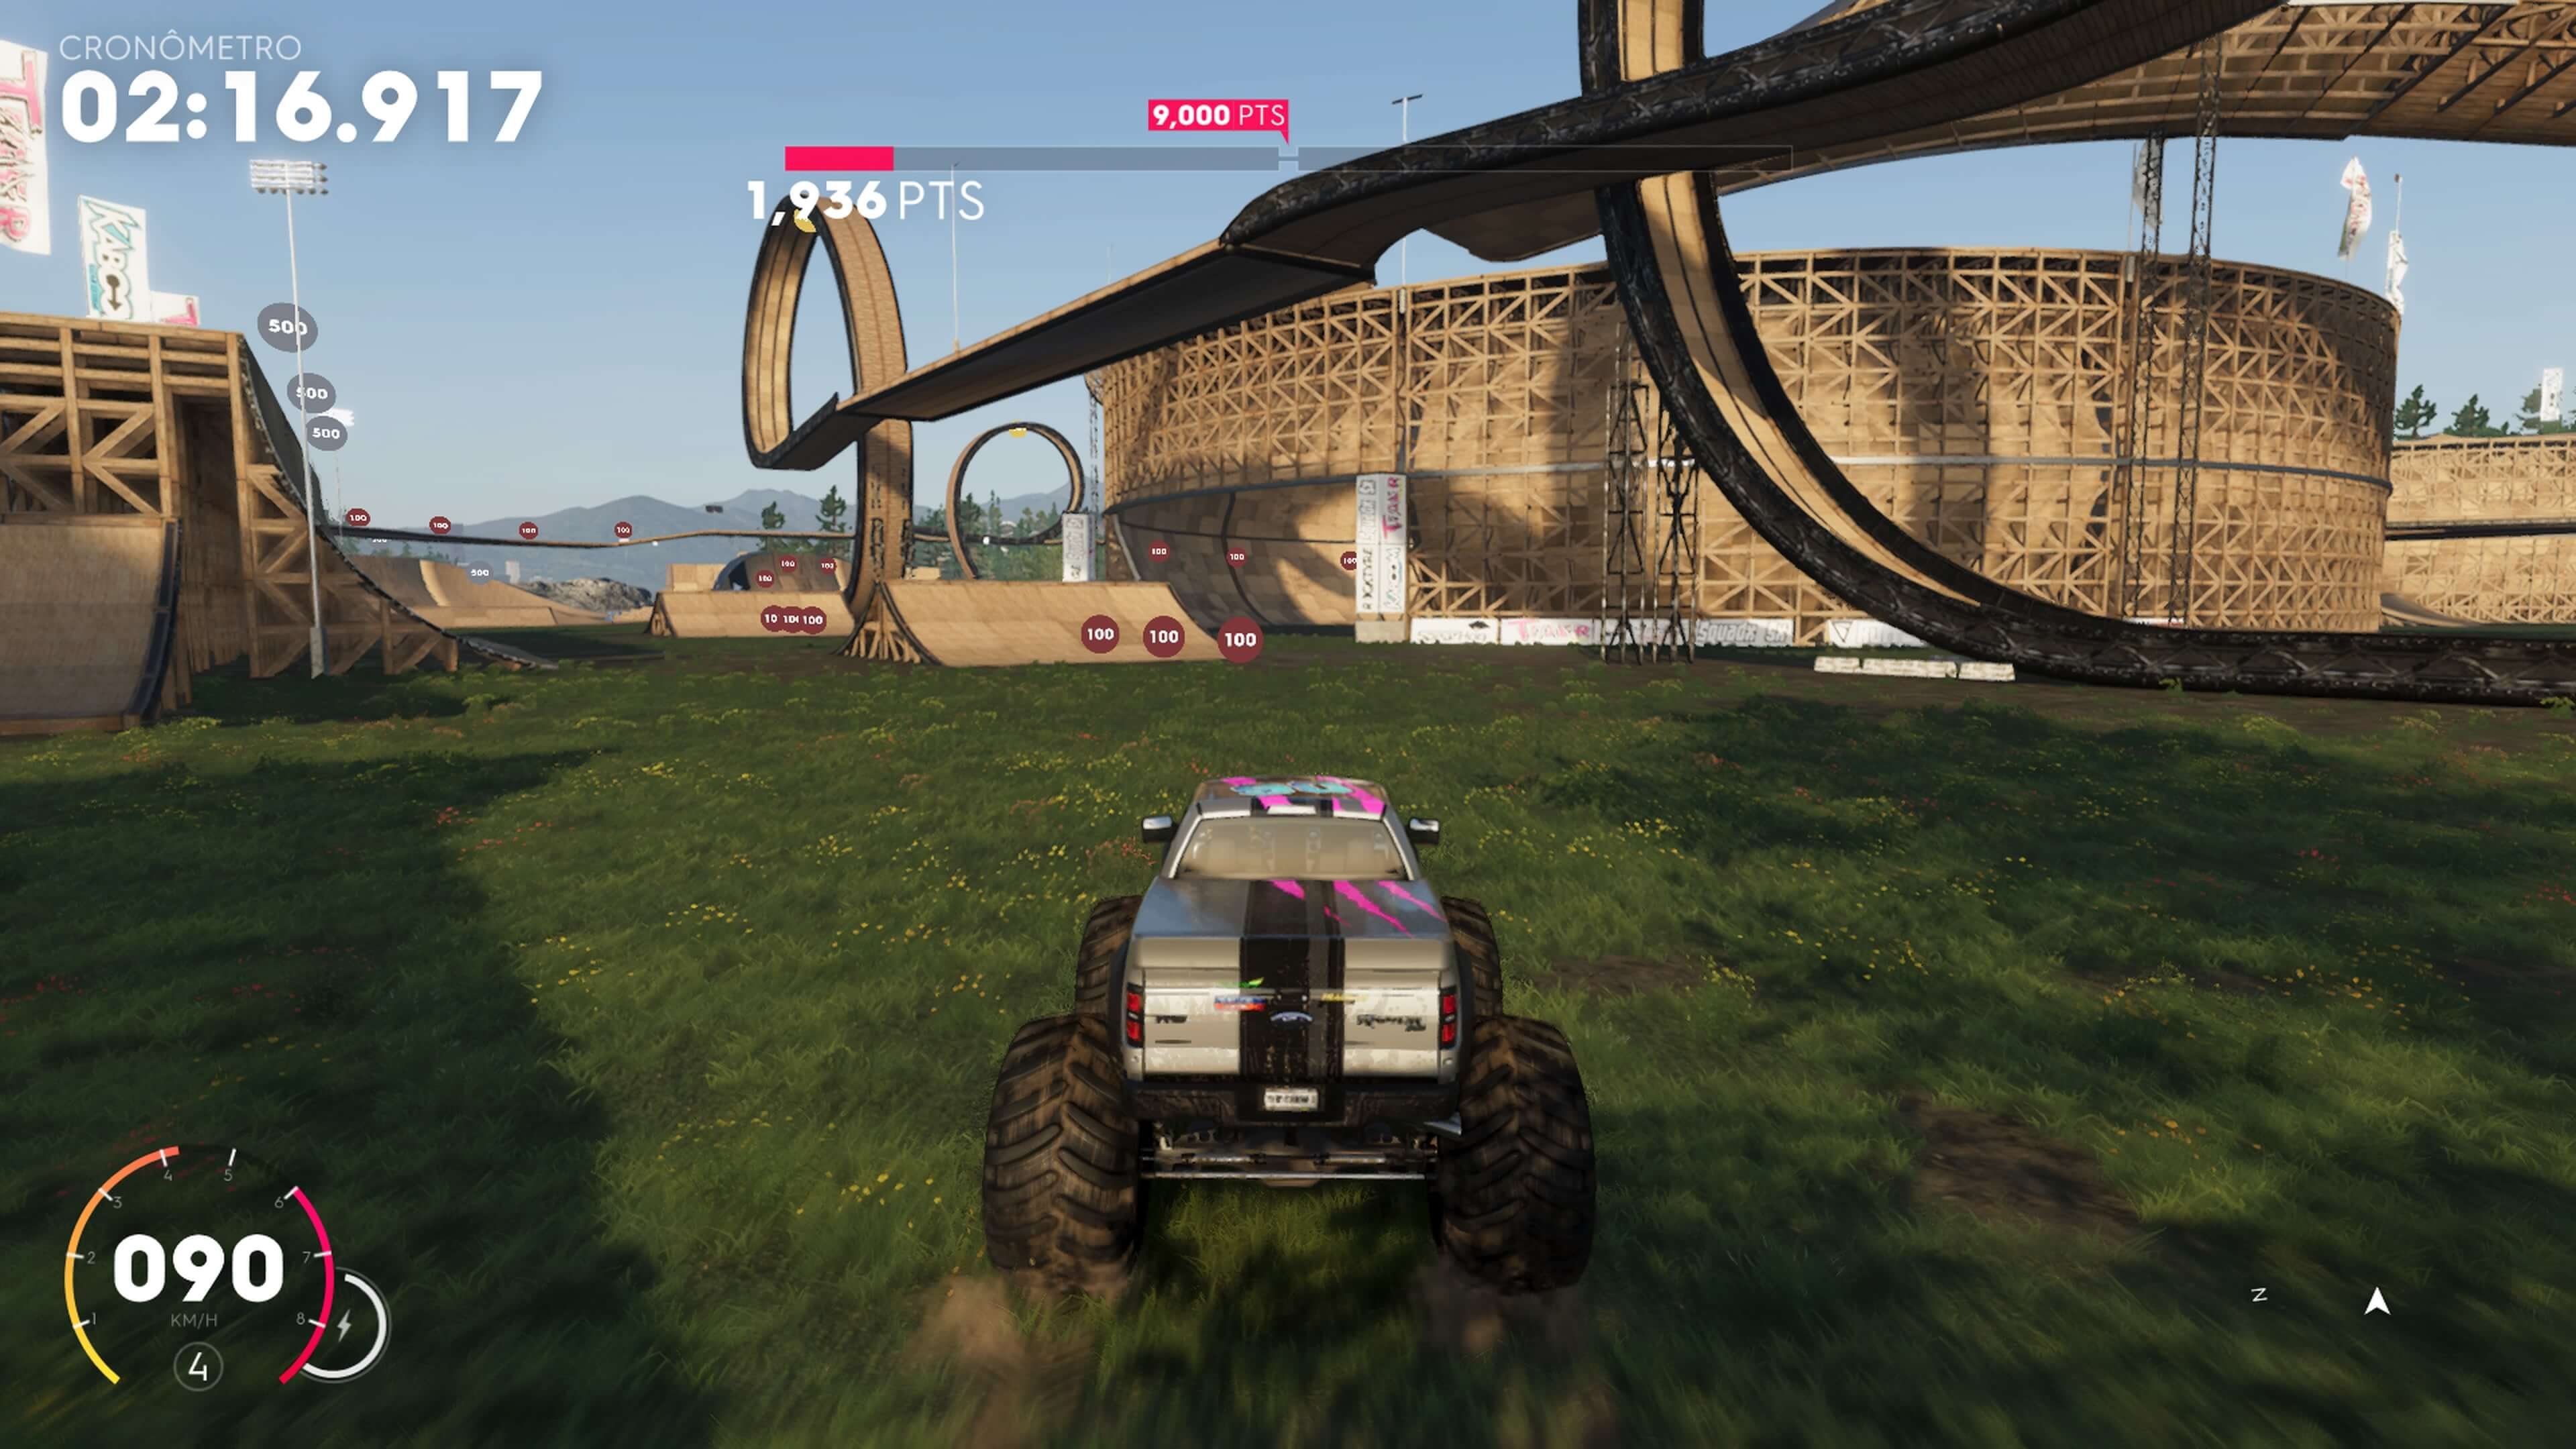 Tony Hawk Monster Truck edition